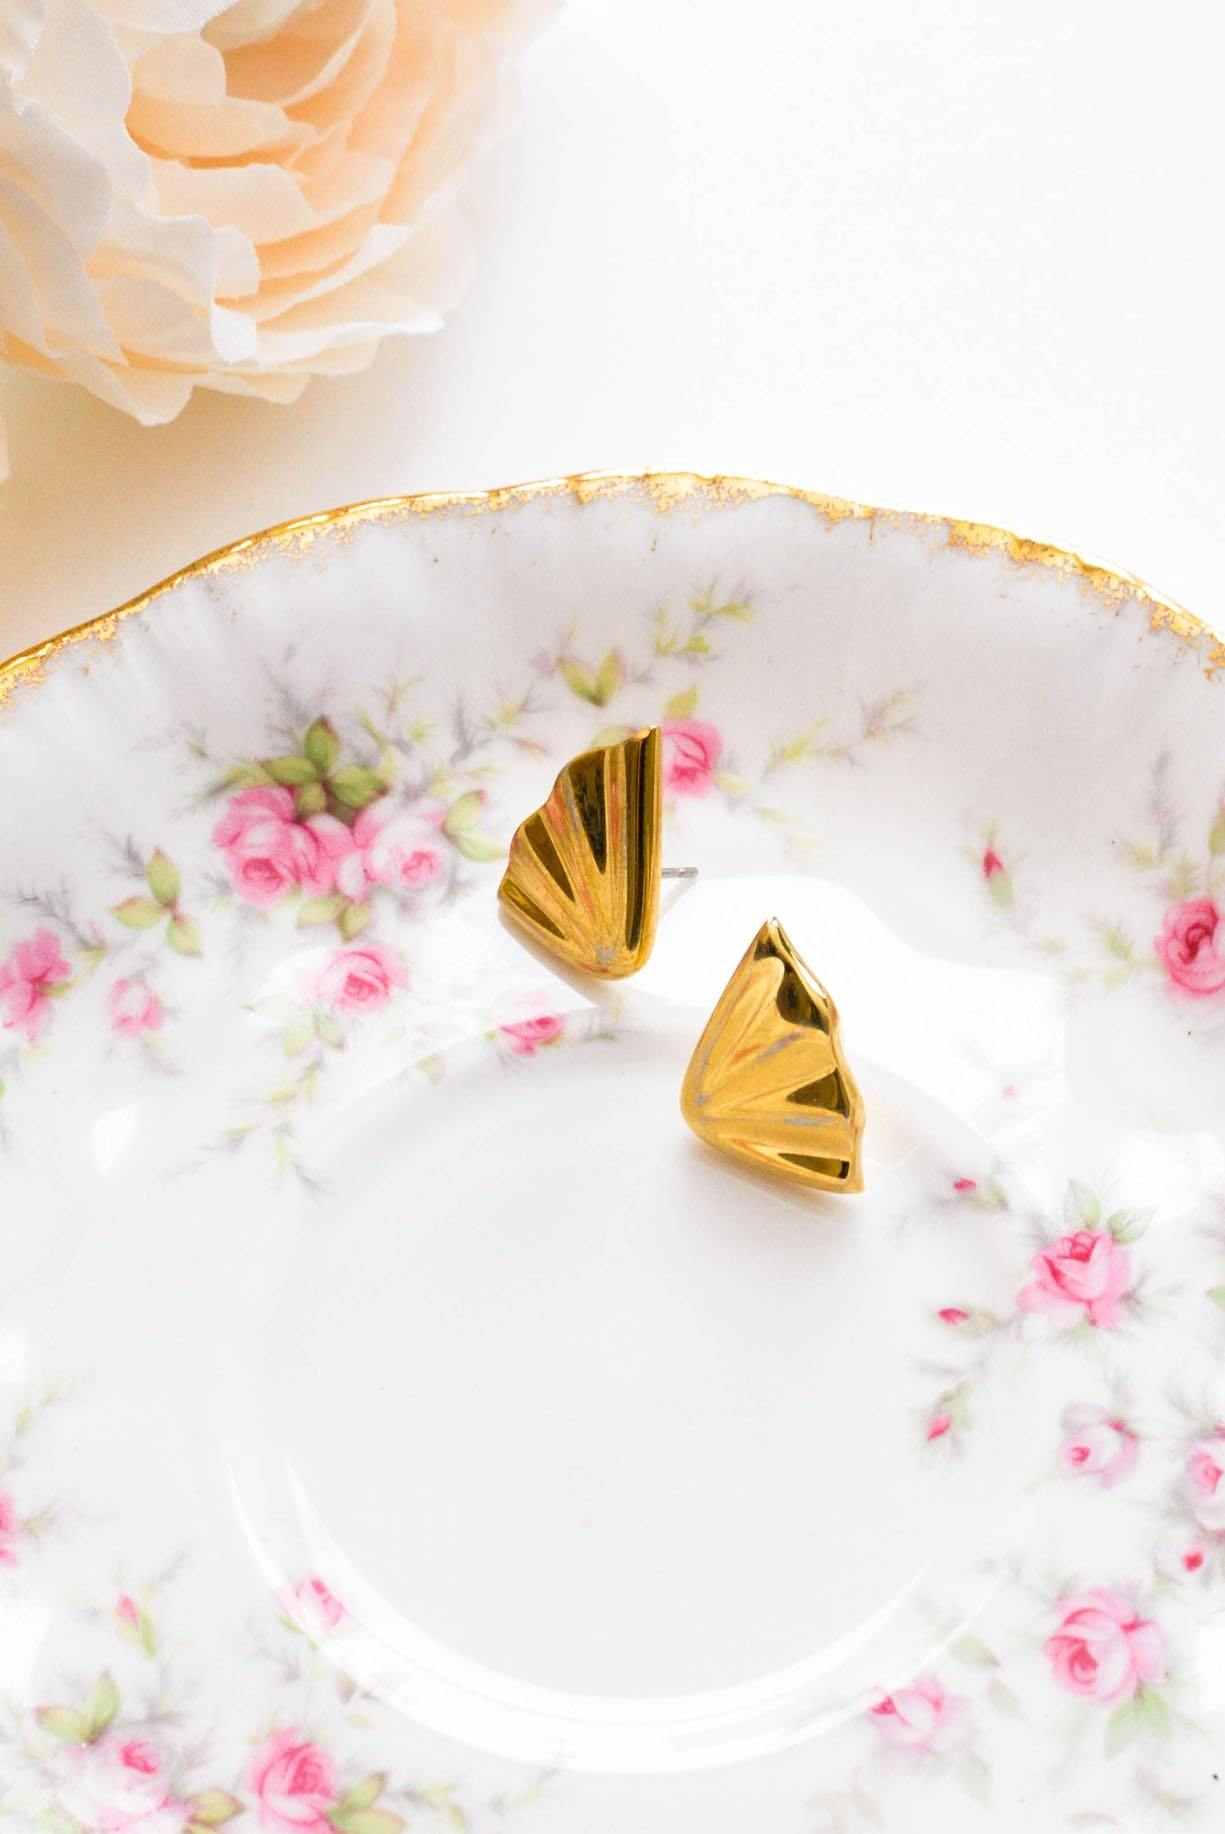 Gold Wings Pierced Earrings - Sweet & Spark